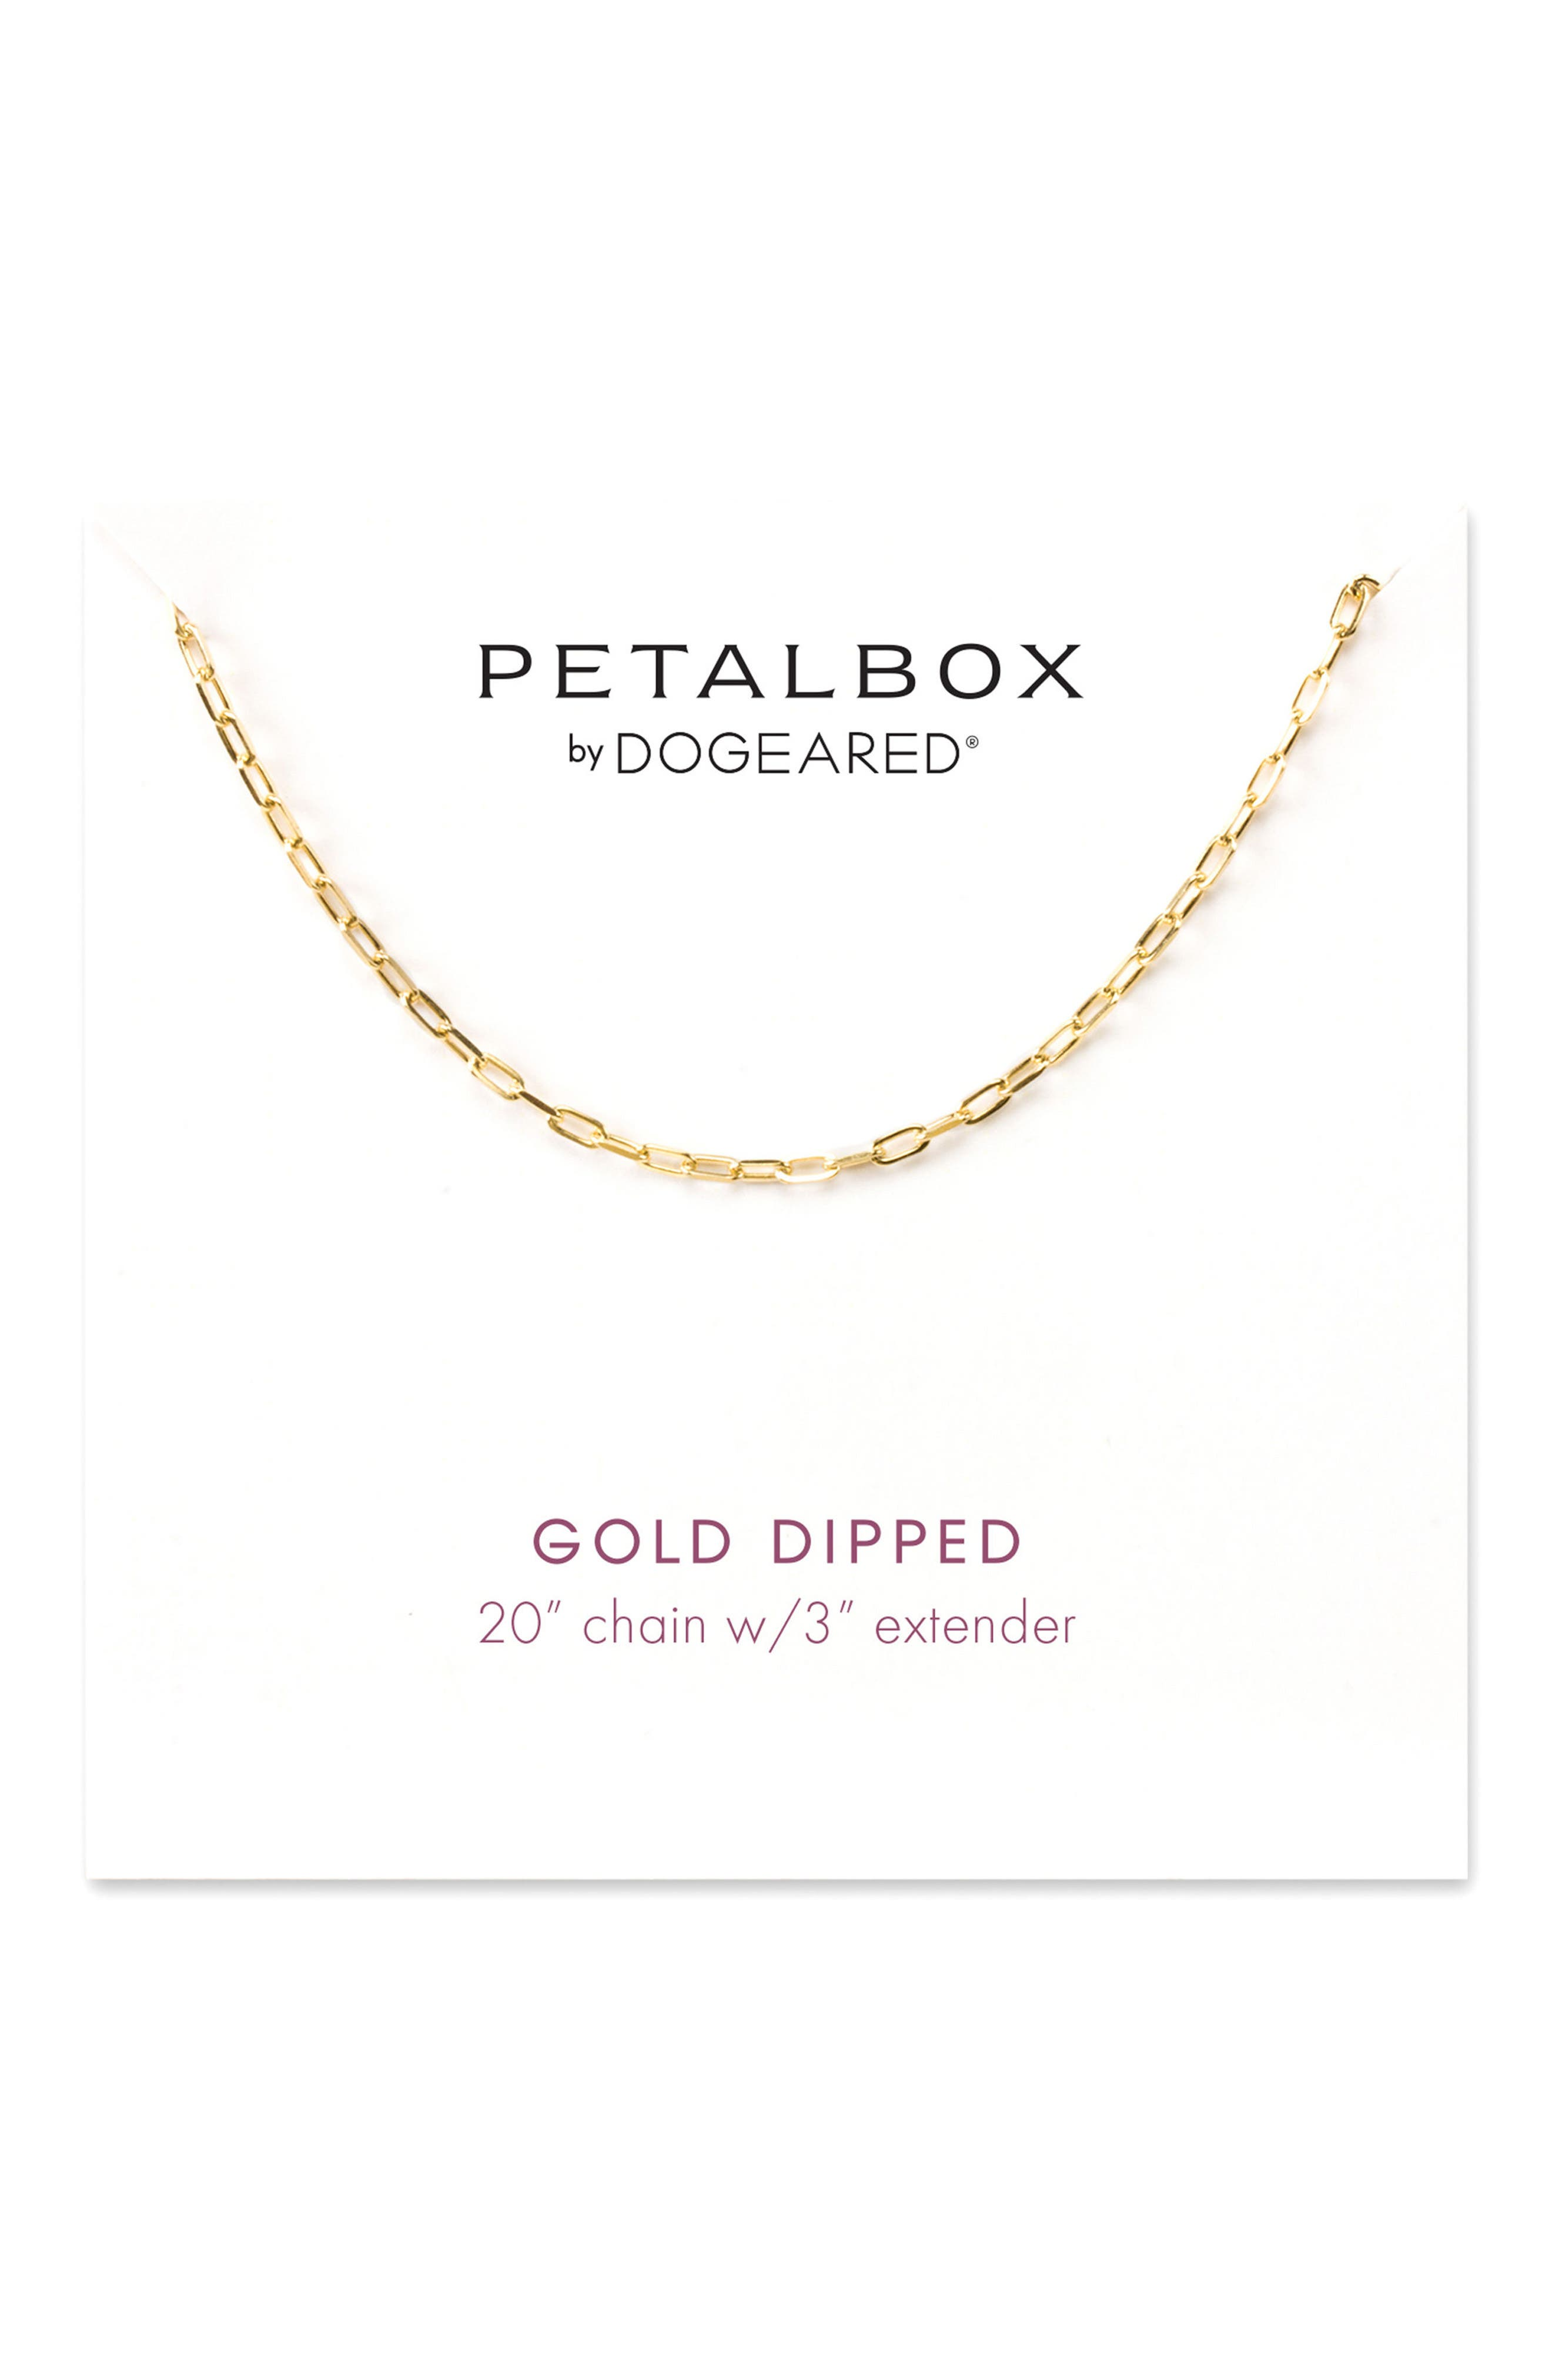 Alternate Image 1 Selected - Dogeared Petalbox Link Necklace (Nordstrom Exclusive)